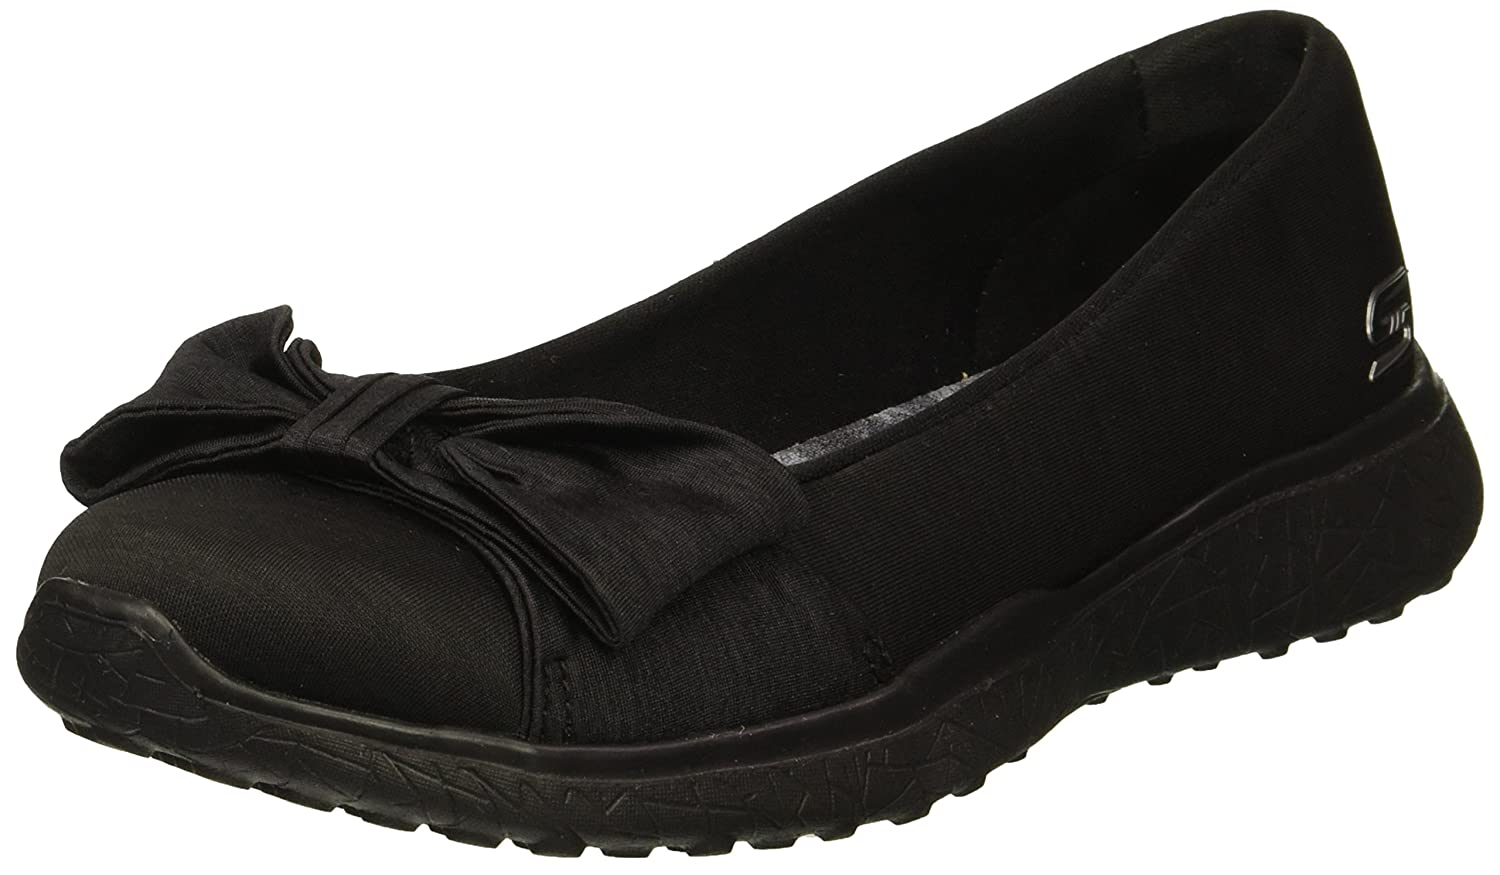 Skechers Women's Microburst-Be-You-Tiful Sneaker B078YSDF7X 5.5 B(M) US|Black